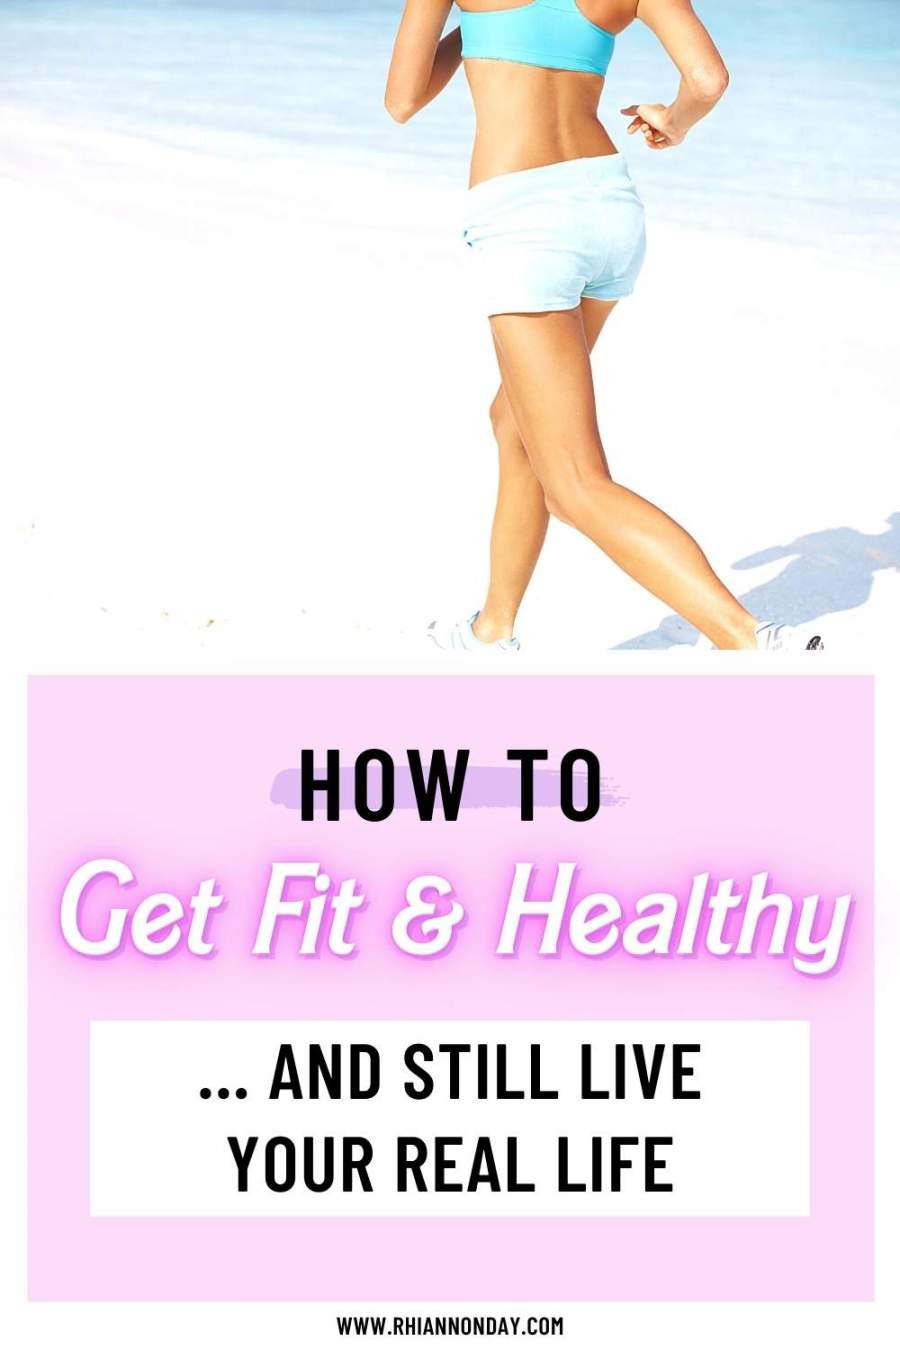 Does your current diet plan feel so restrictive it's impacting on your lifestyle?  Are you looking for a way to get fit + healthy and still live your life?  Here's what you need to know. #fitnessjourney #healthylifestyle #weightloss